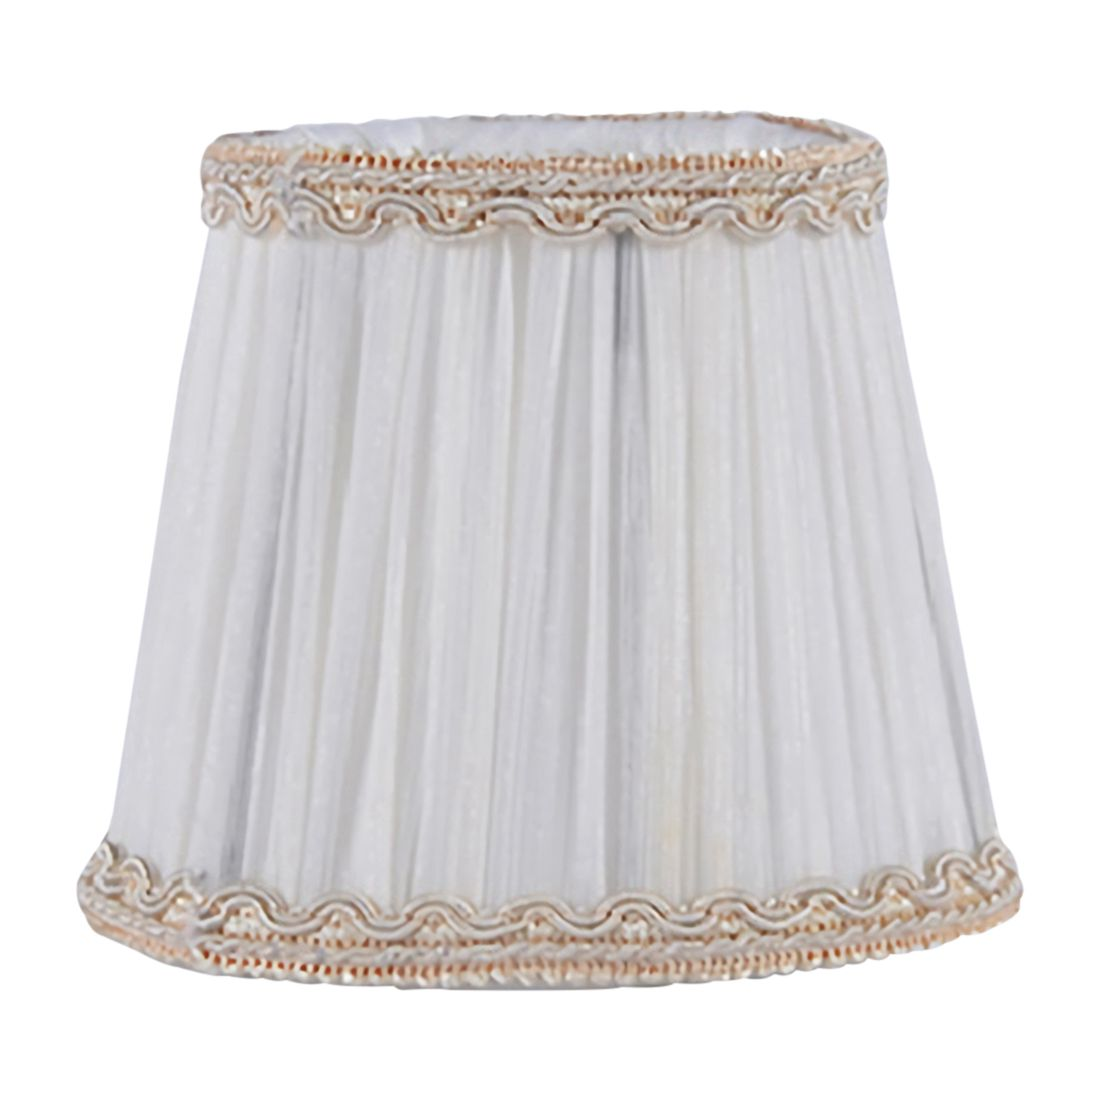 Chiffon lampshade candle crystal chandelier lamp Clip type lamp holder lamp Head Light Lamp cover in Lamp Covers Shades from Lights Lighting